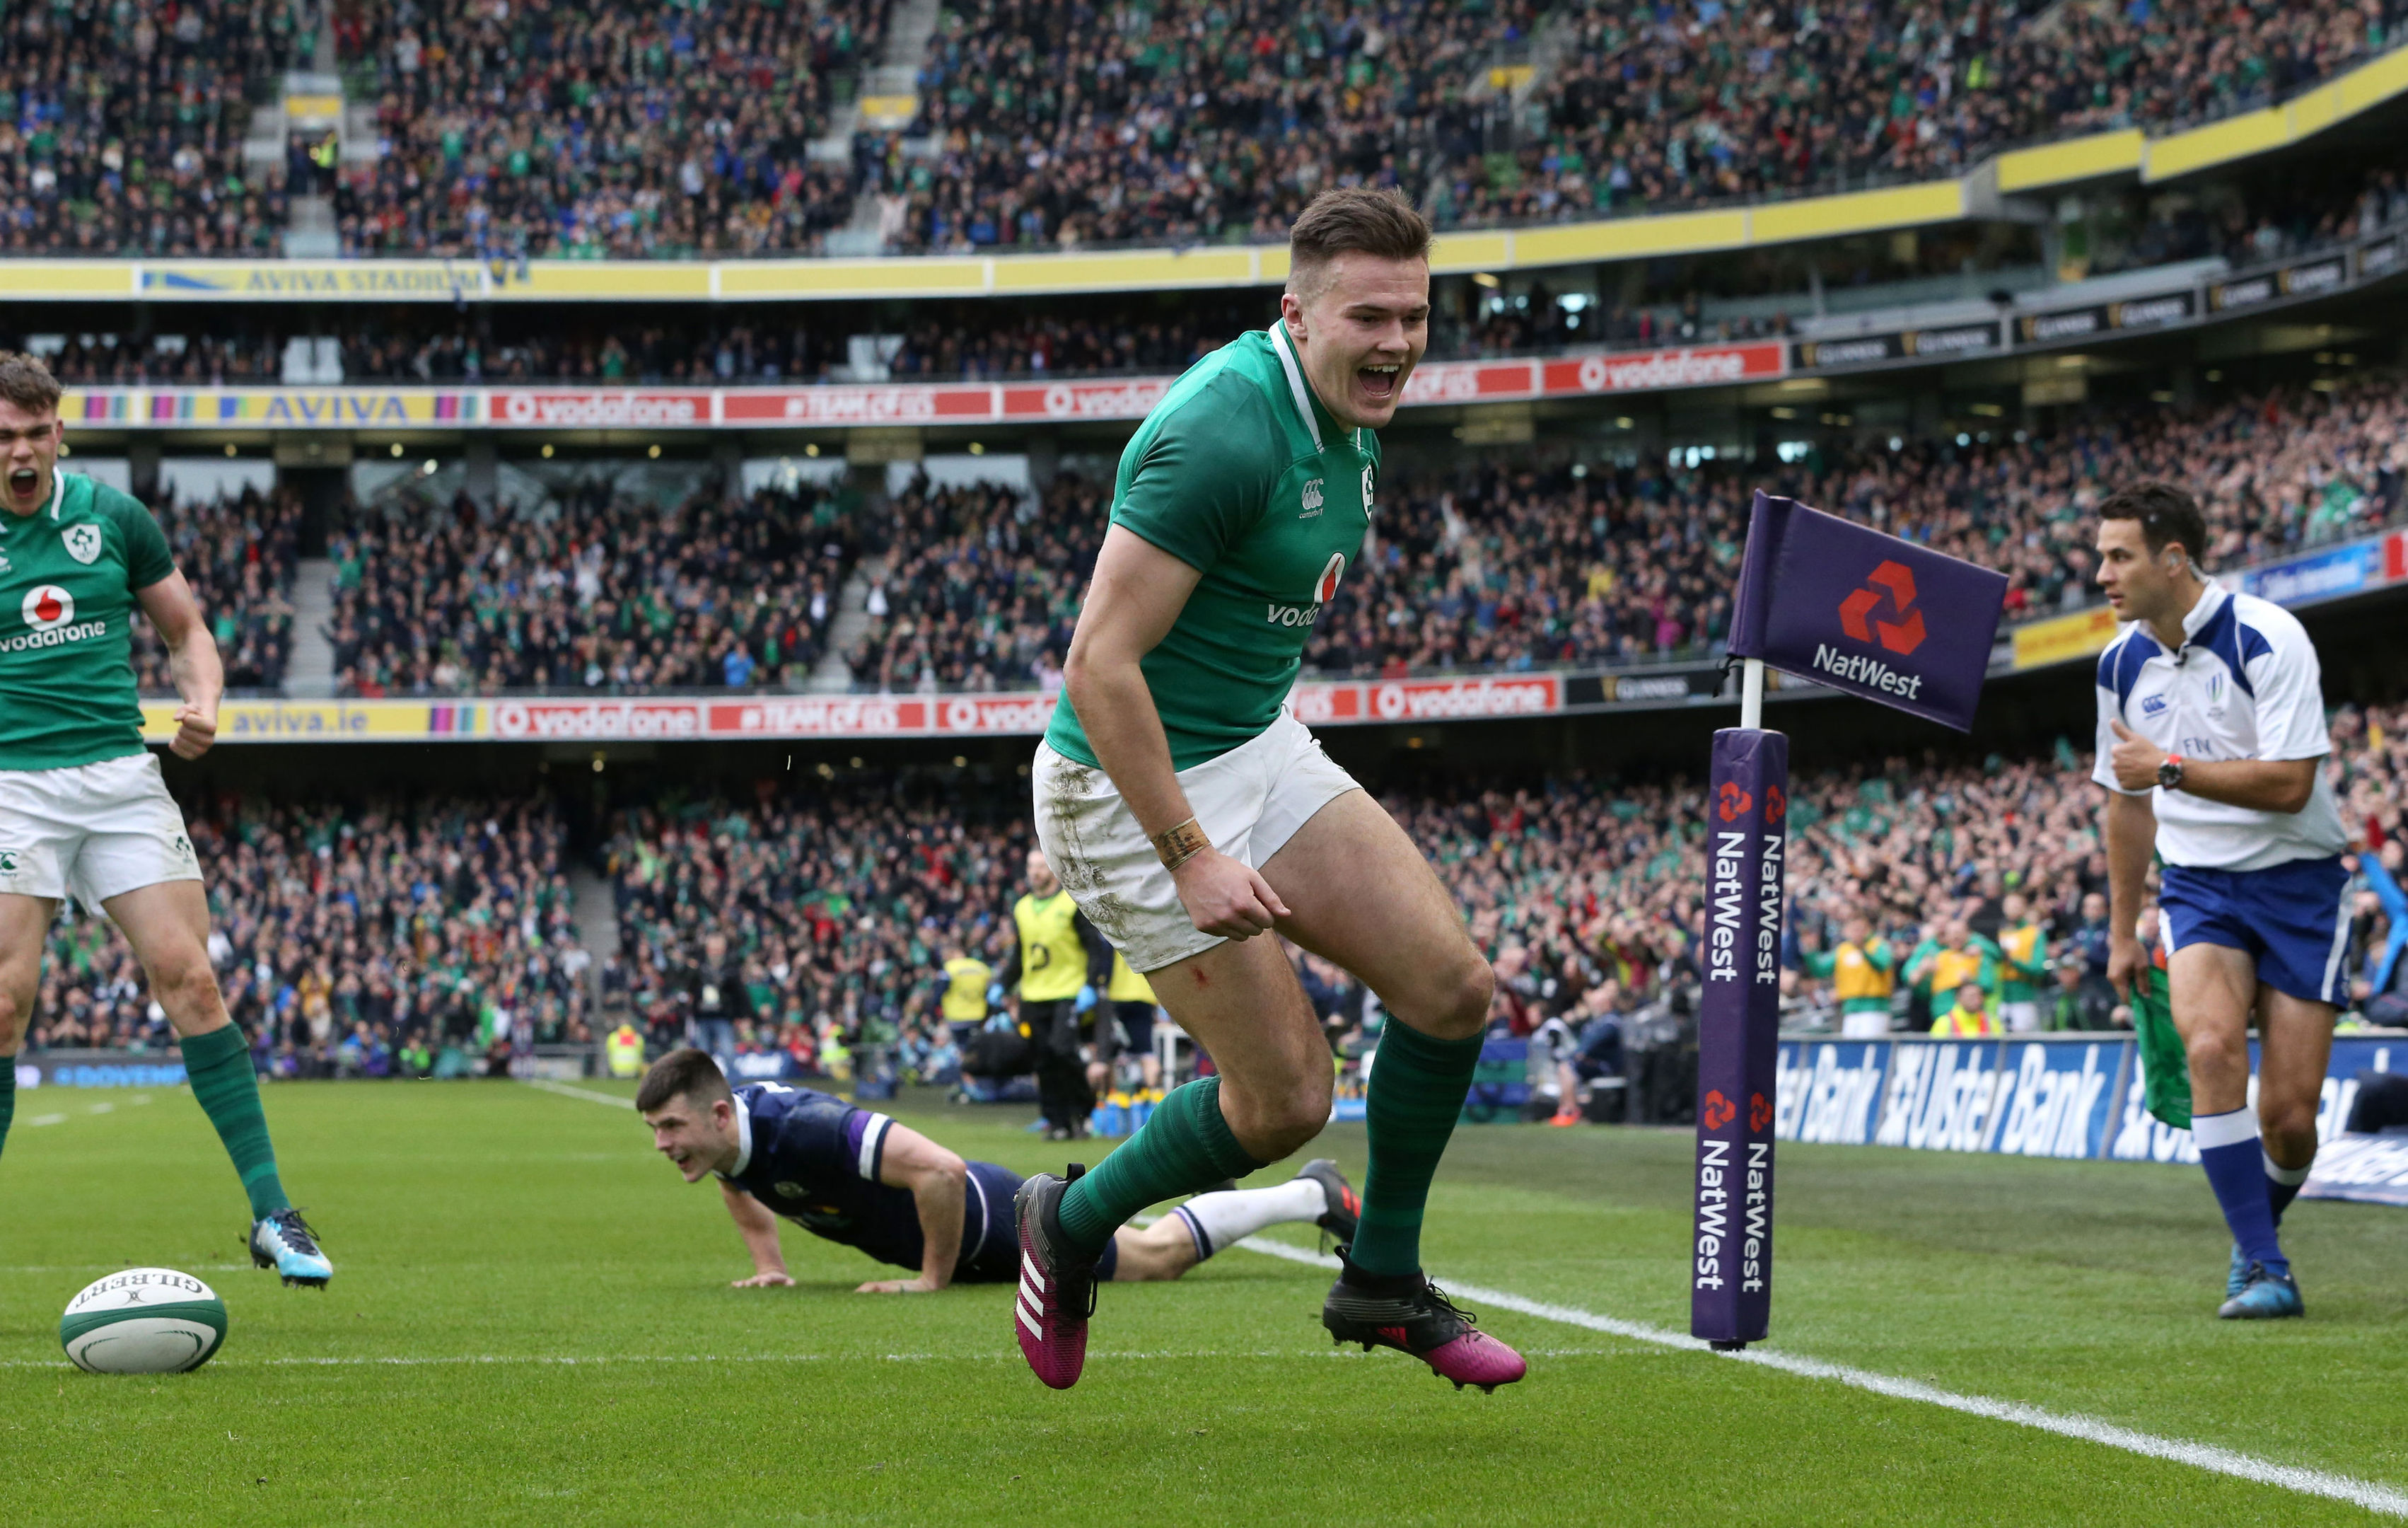 Ireland's Jacob Stockdale celebrates scoring his second try against Scotland in Dublin.